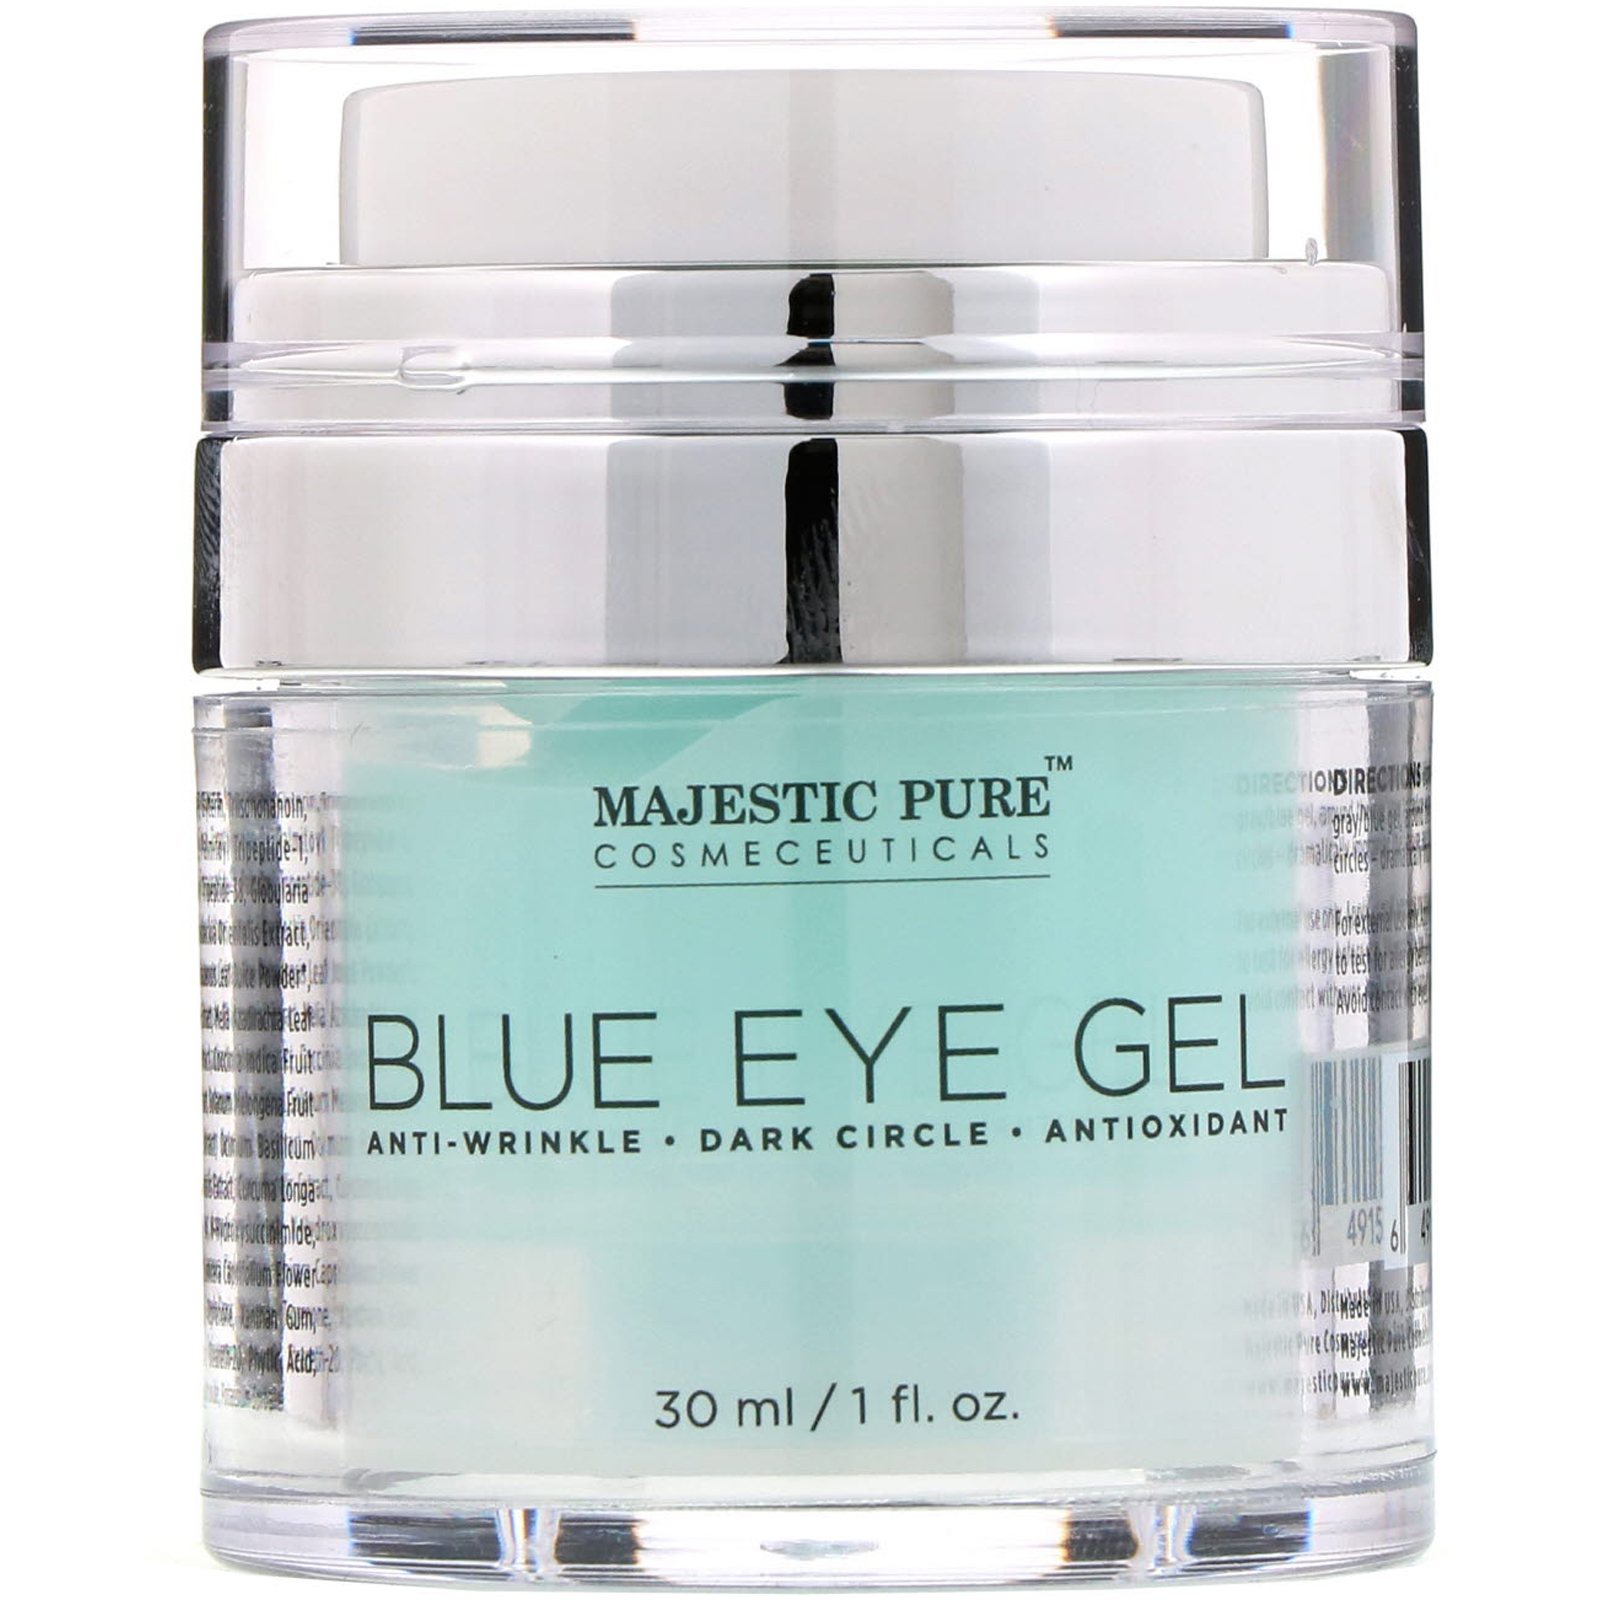 578e3a9d235 Majestic Pure, Blue Eye Gel, 1 fl oz (30 ml). By Majestic Pure. Click to  zoom